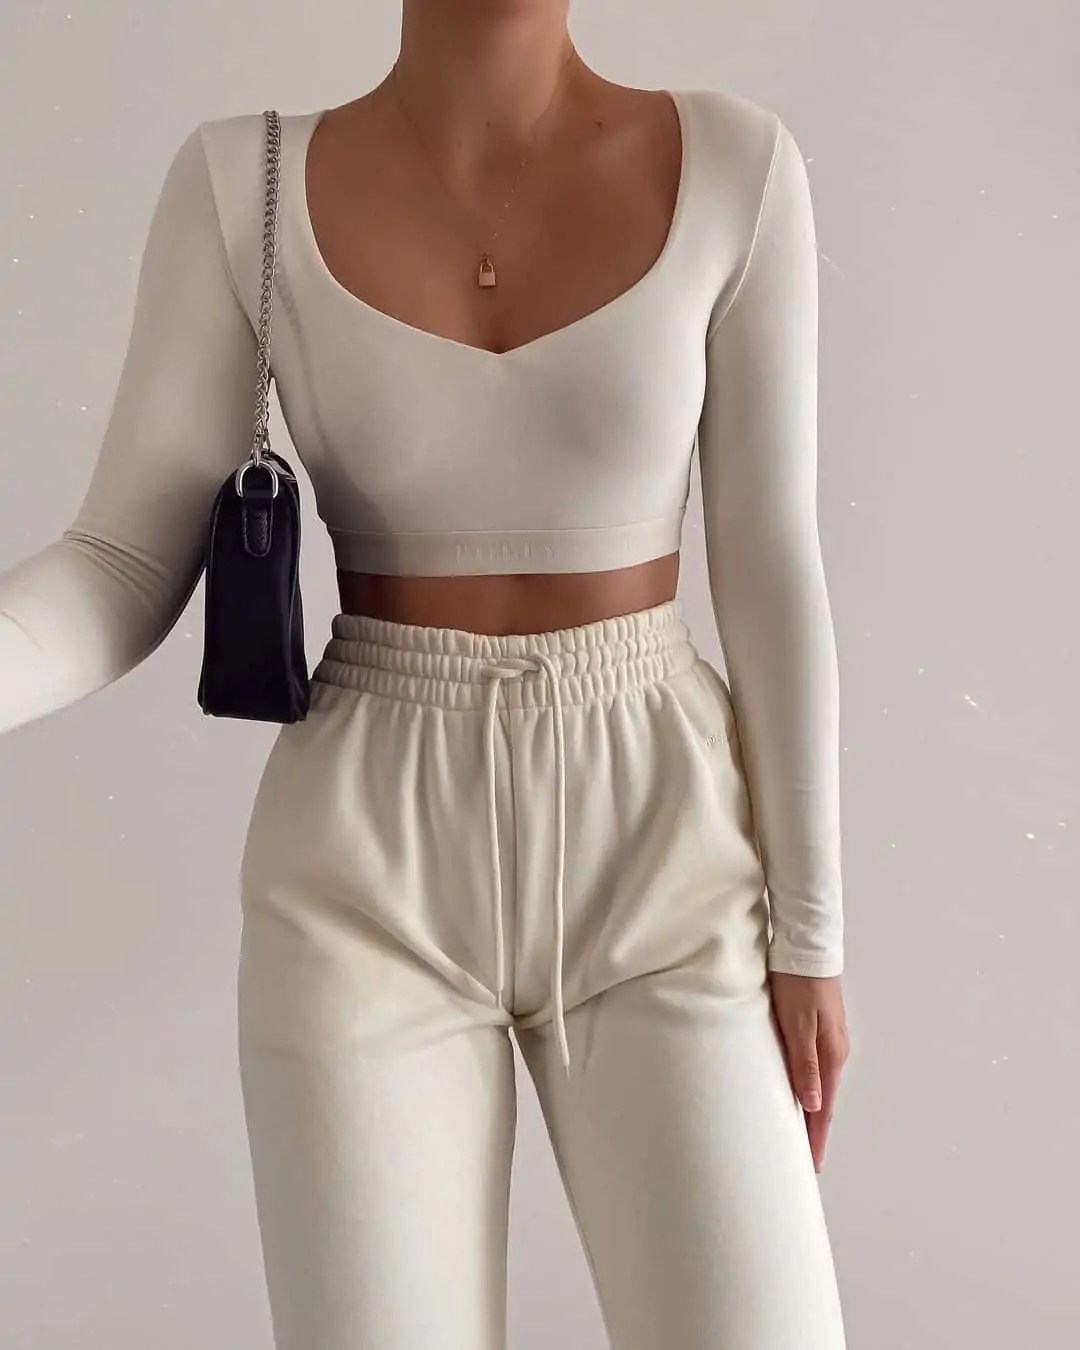 100+ Outfits to Inspire your next shopping haul 155